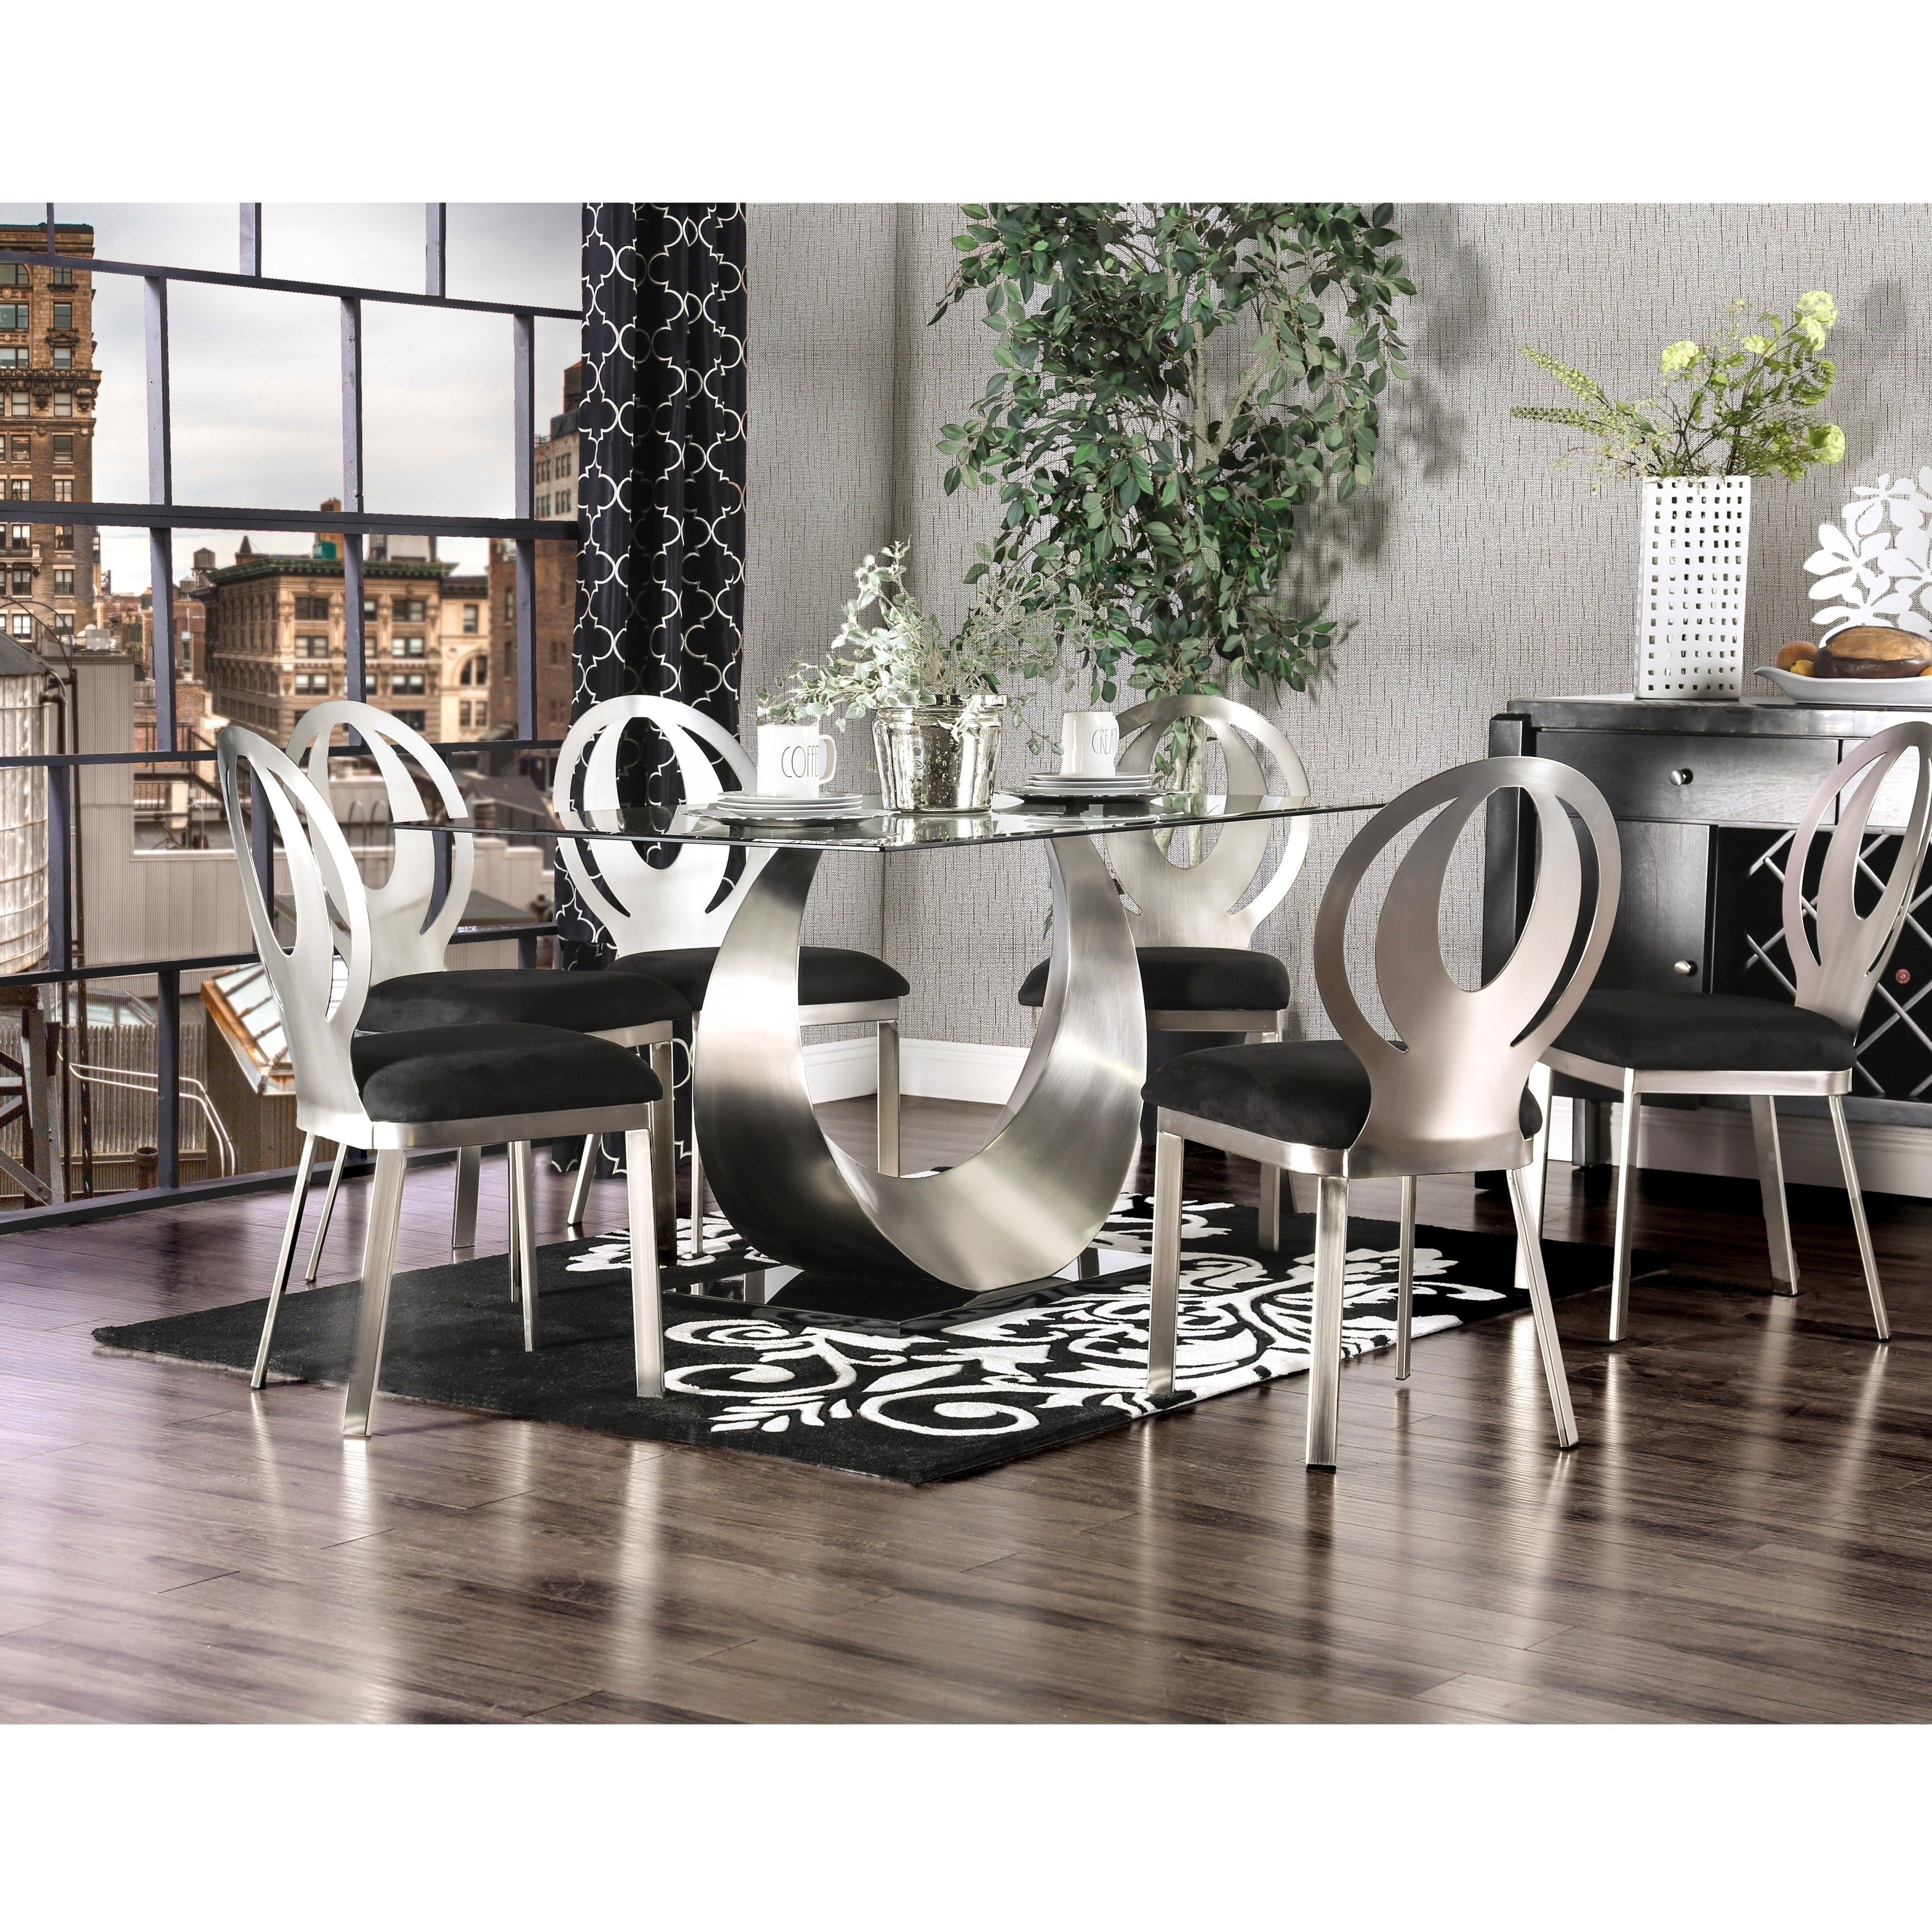 Serenia Contemporary Silver Dining Table By Foa On Free Shipping Today 11729321